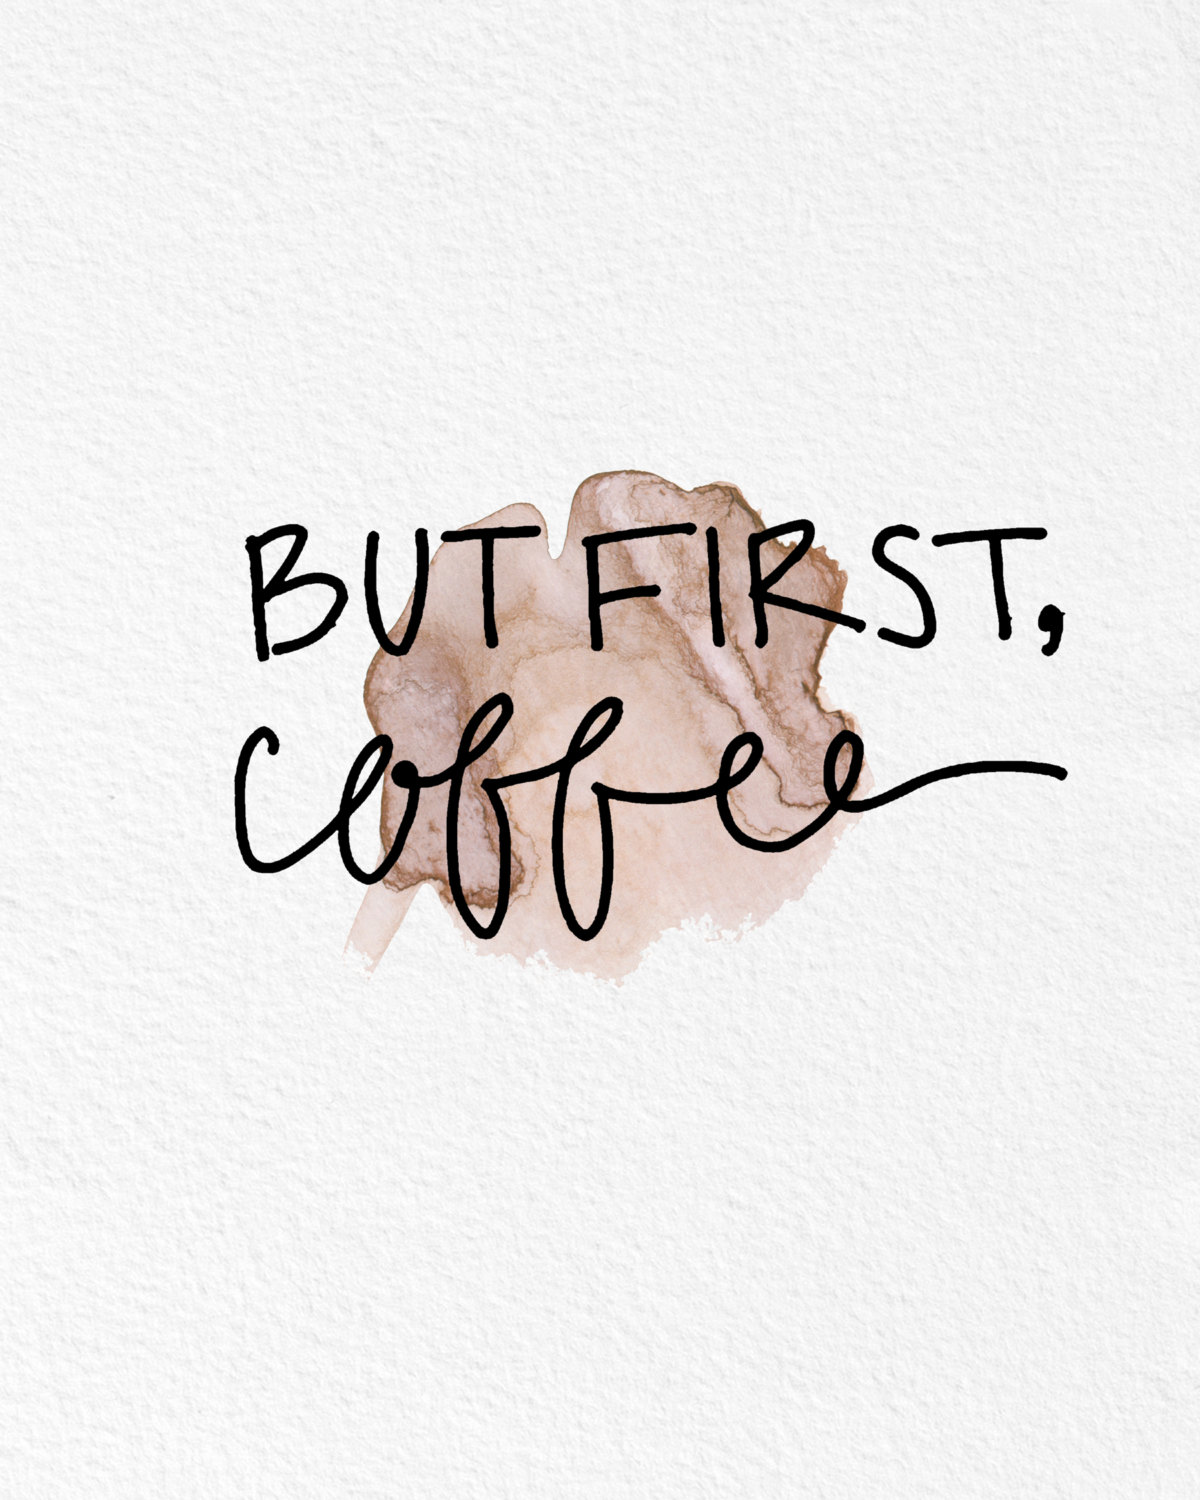 Coffee Quotes Funny Watercolor Art But First Coffee Quote Funny Gift Modern 8X10 Wall